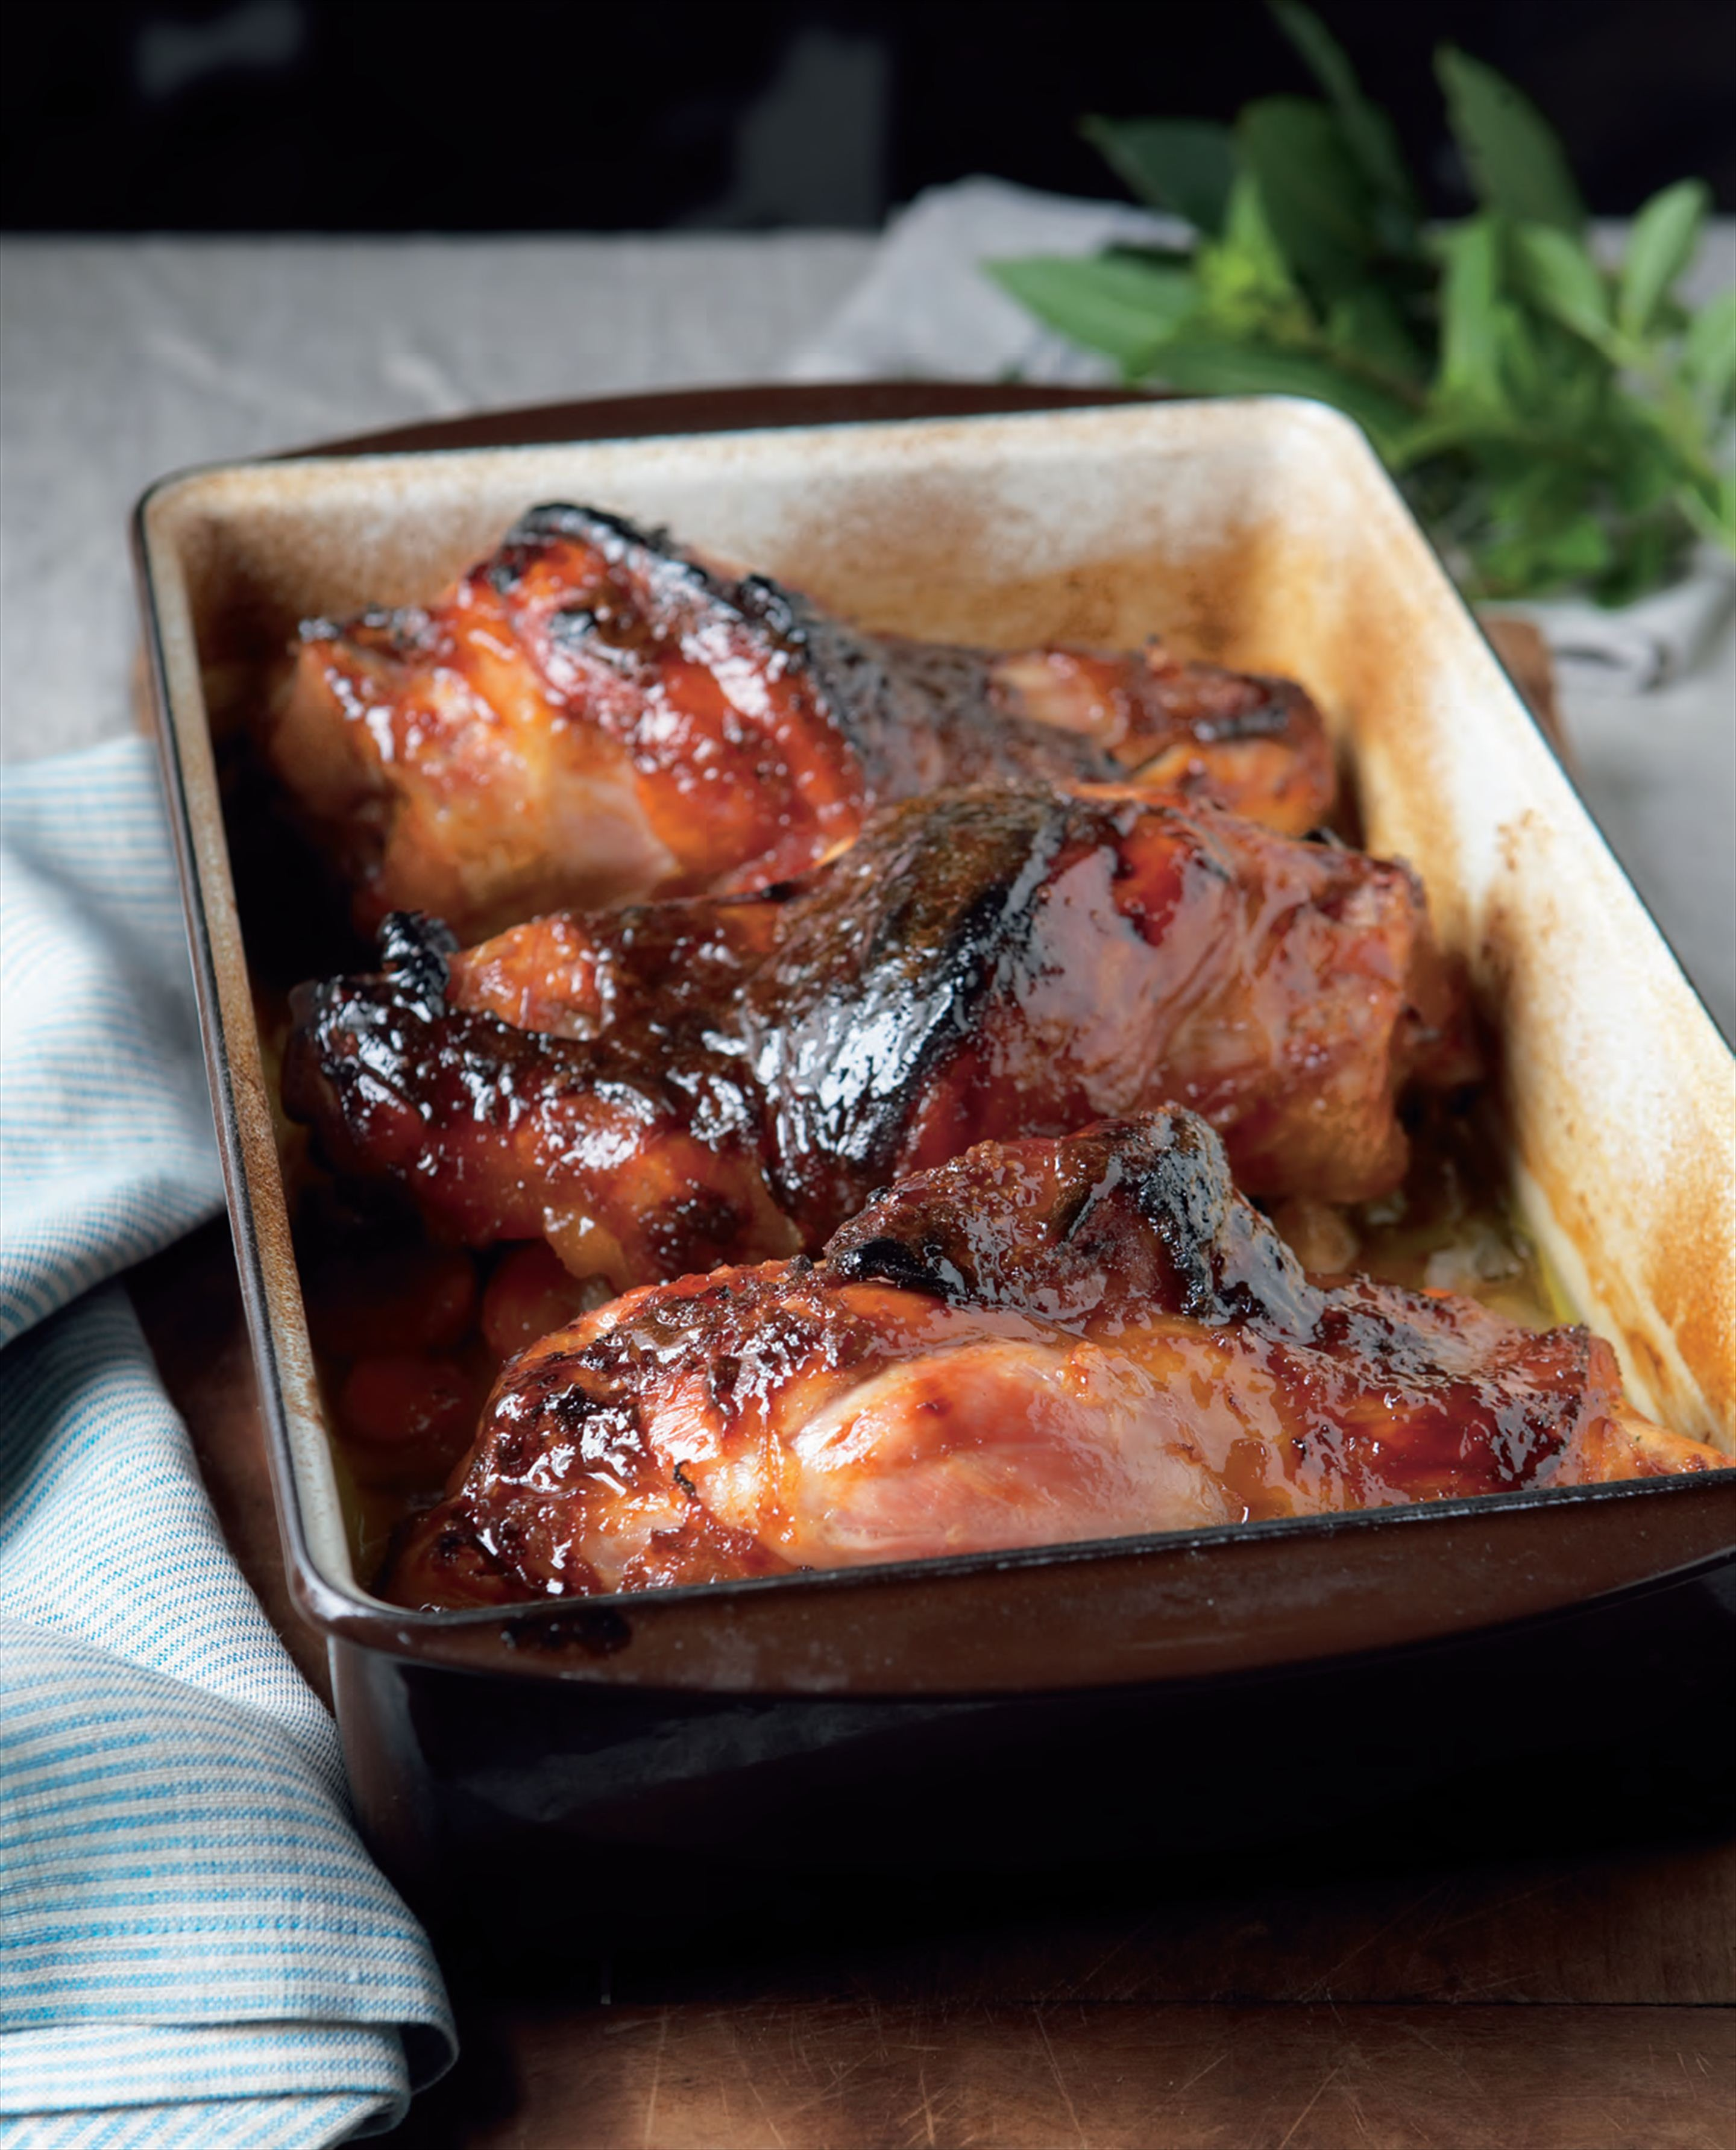 Glazed baked pork hocks